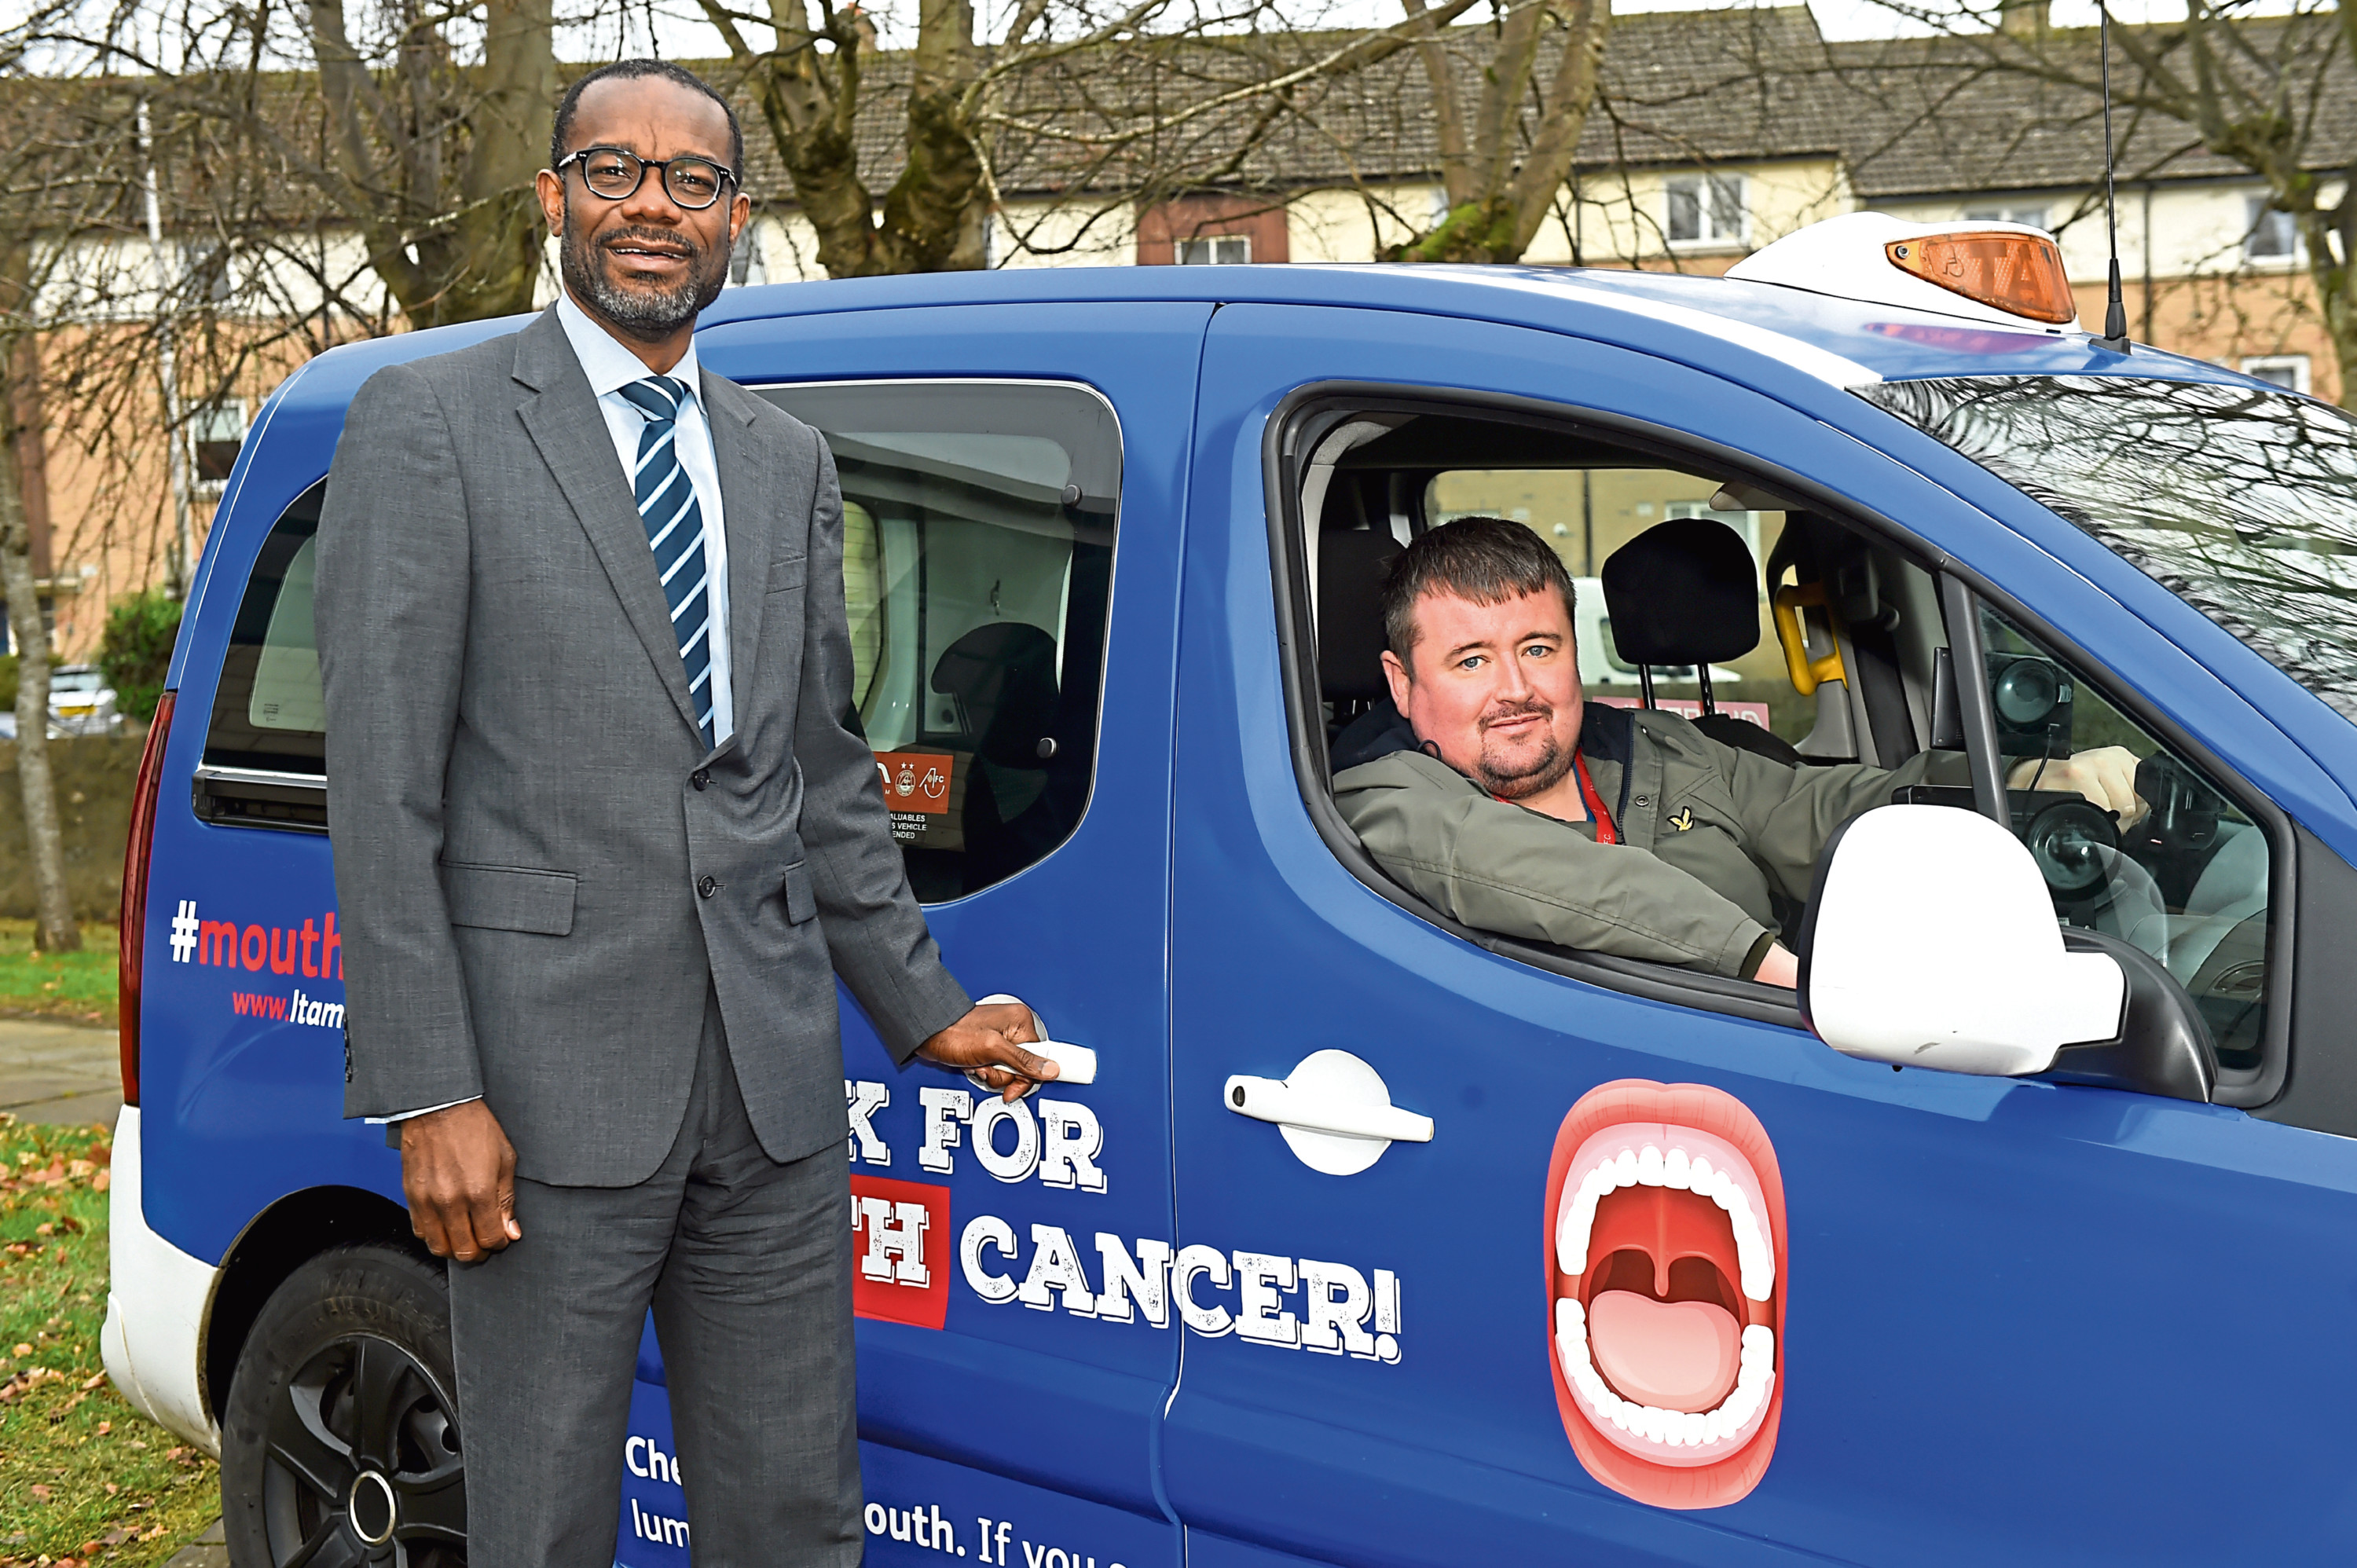 From left, Jonathan Iloya, consultant in Dental Public Health, and taxi driver Mark Muirden